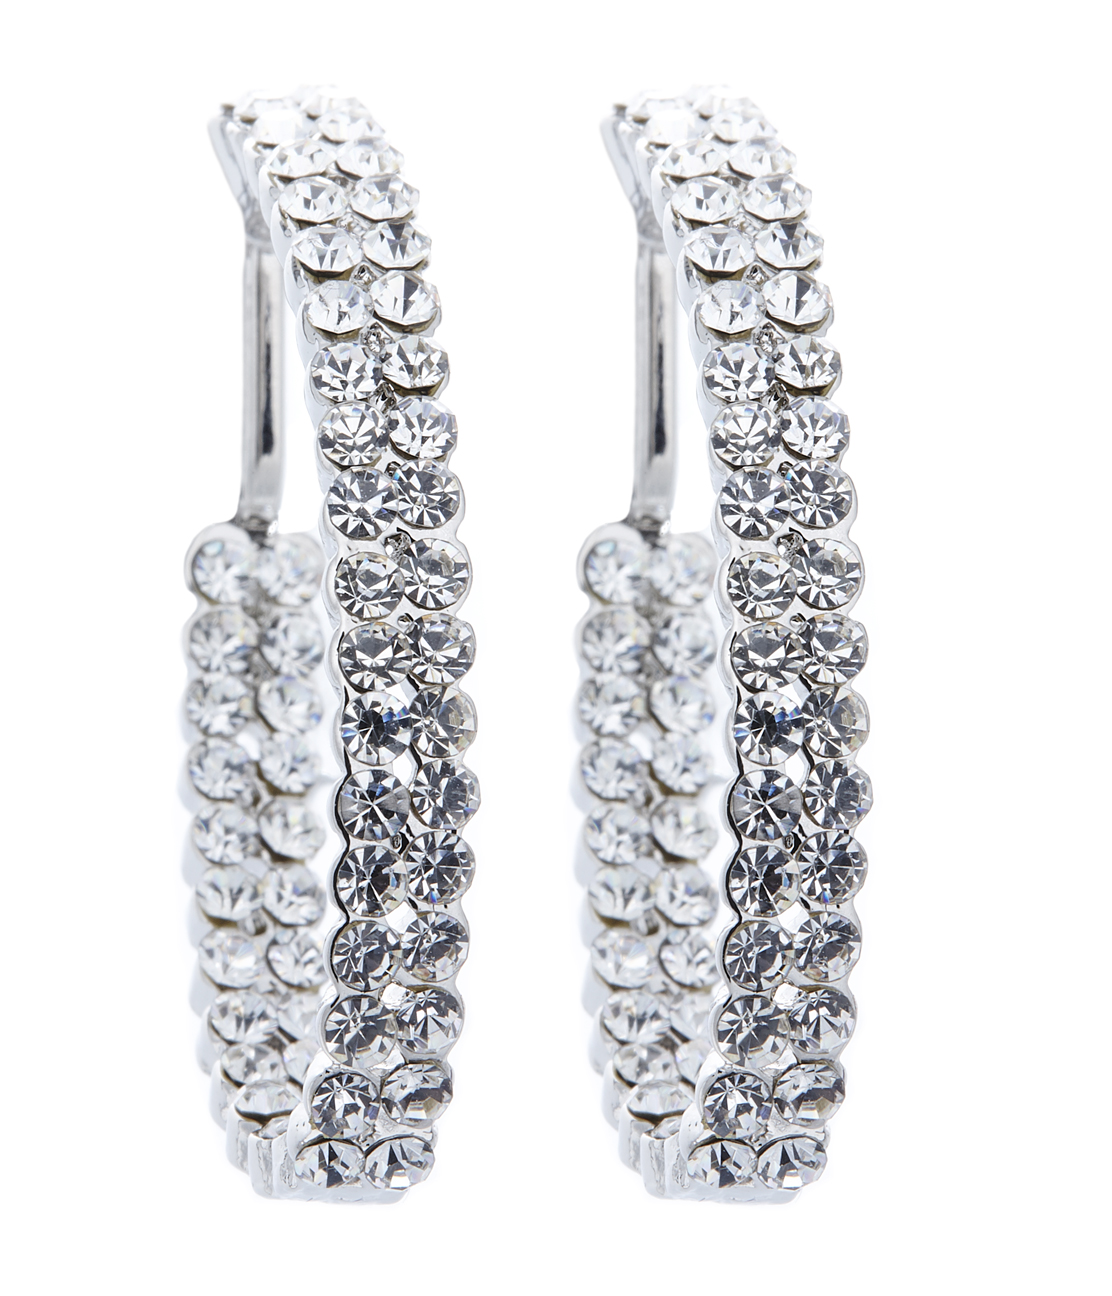 Clip on earrings - Macey - silver hoop earring with clear crystals